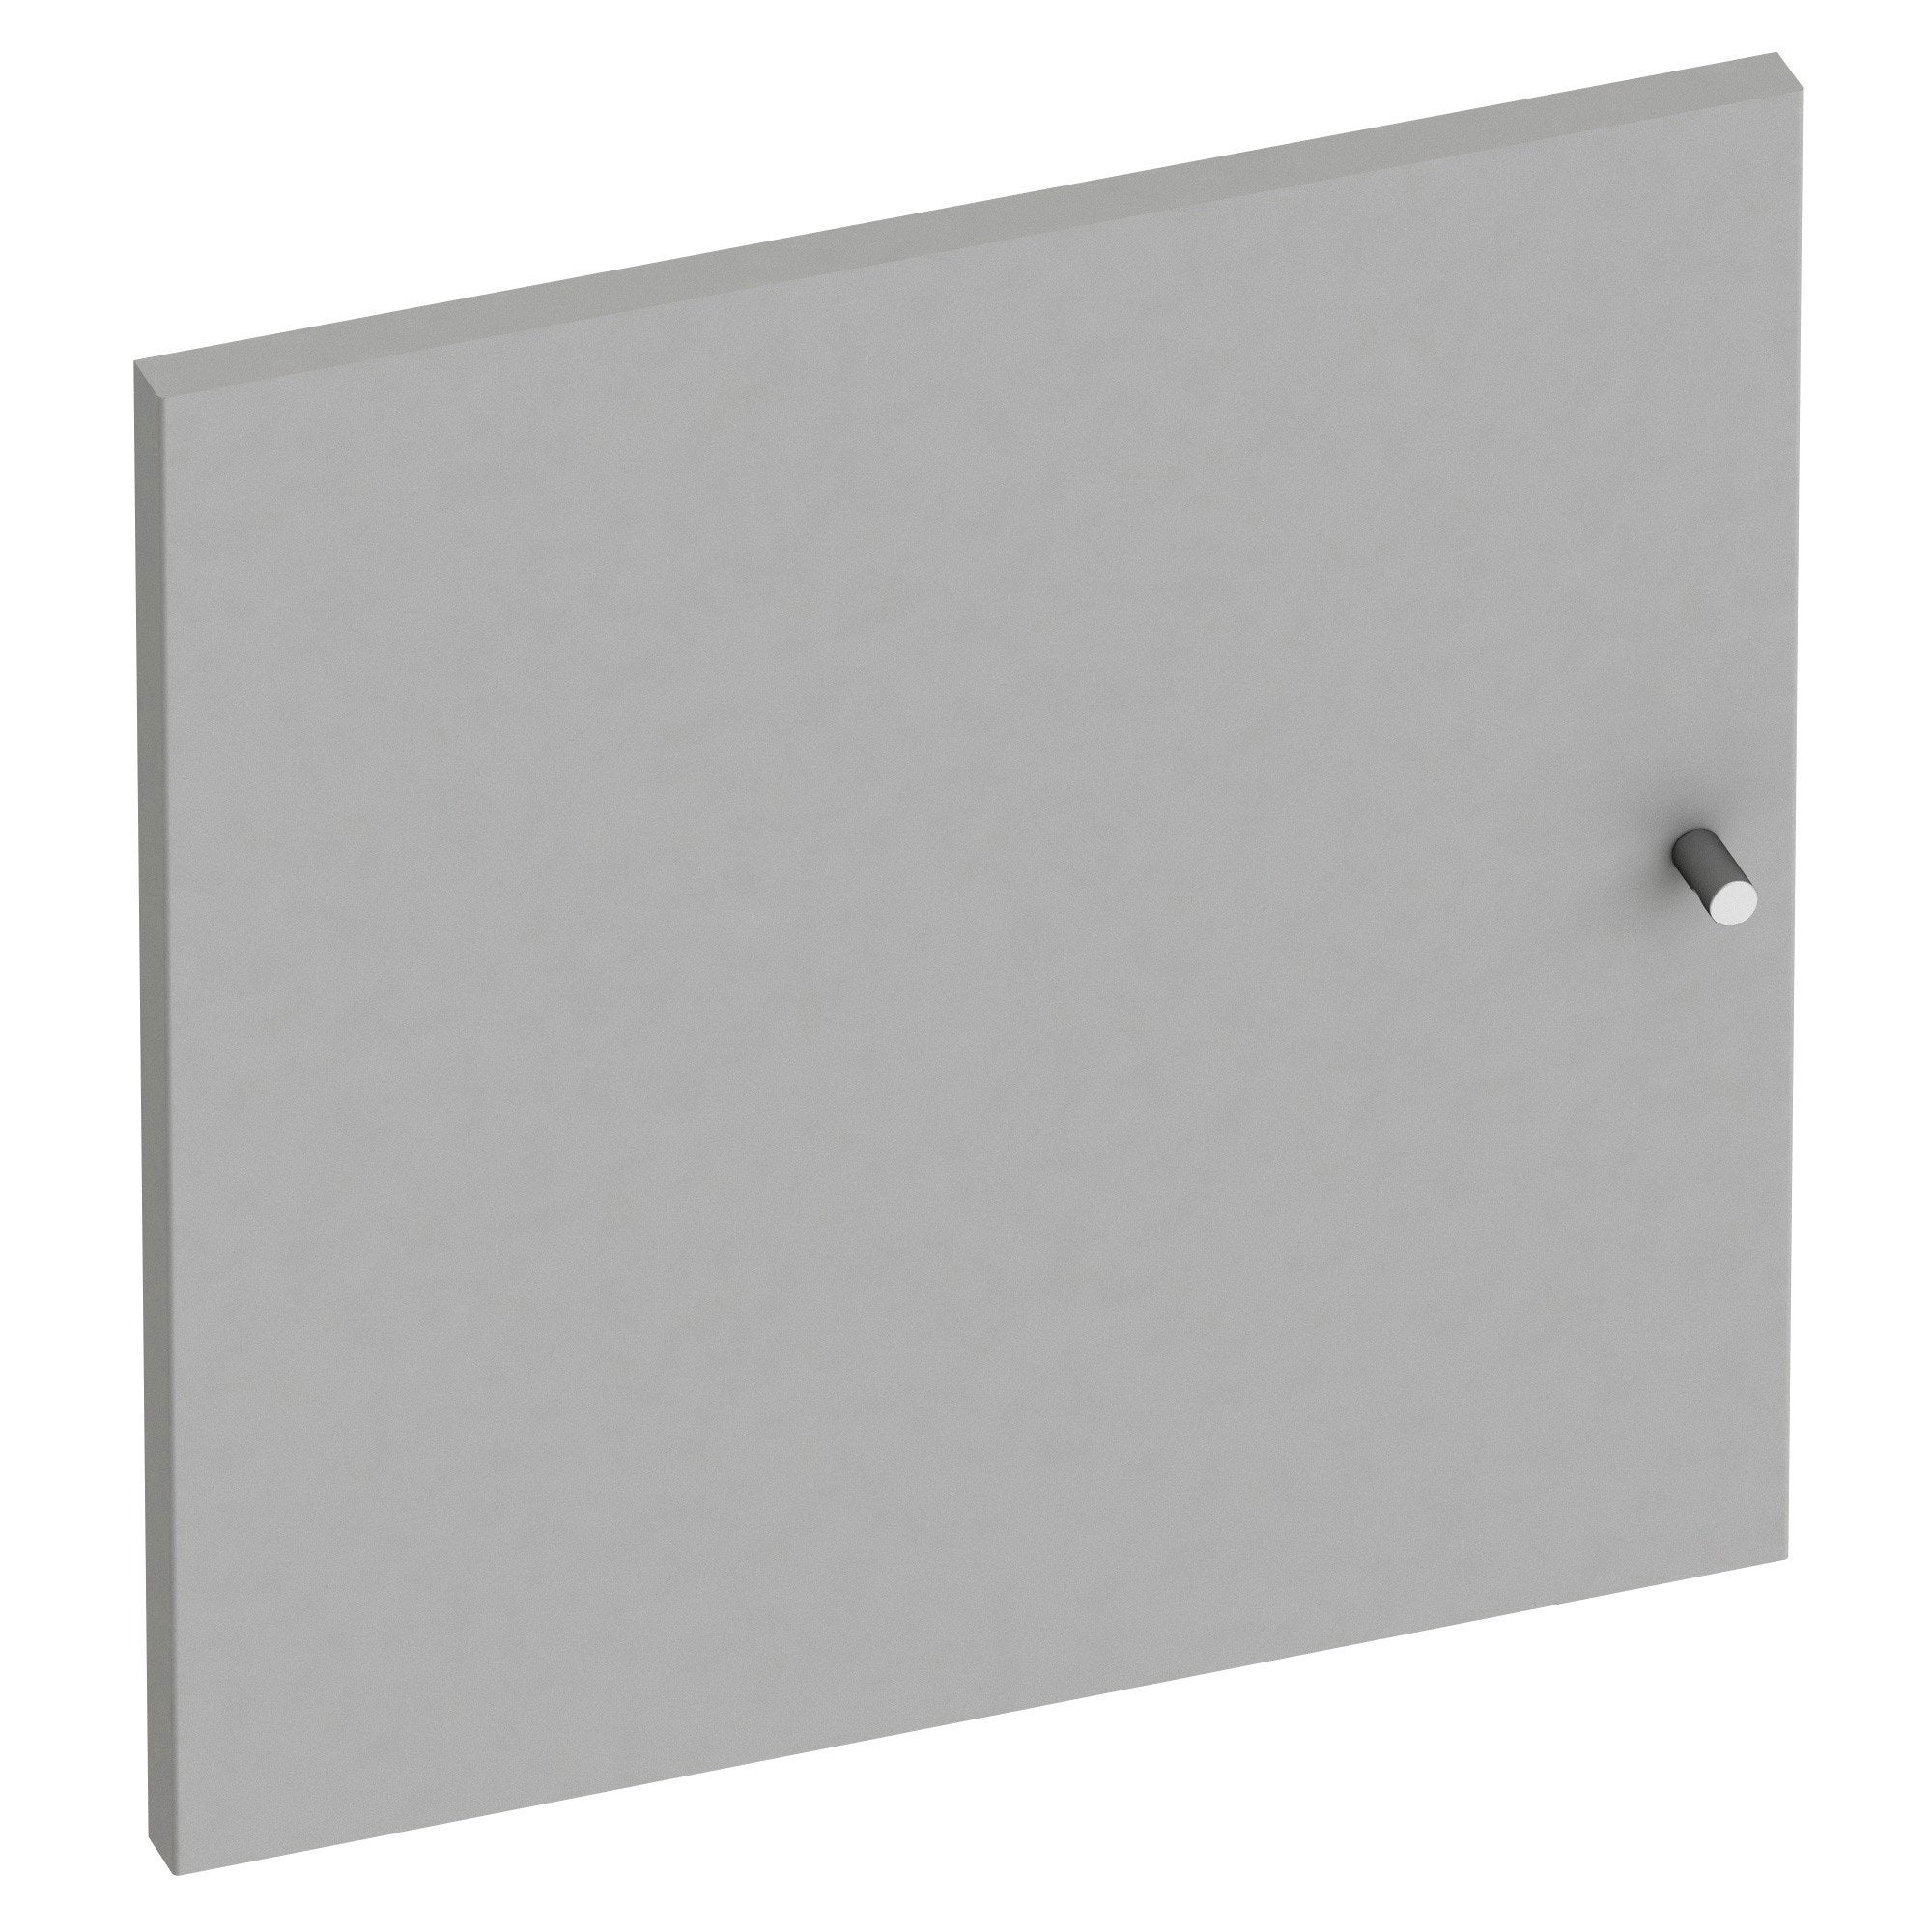 Porte battante SPACEO Home 40 x 40 x 1.6 cm, anthracite